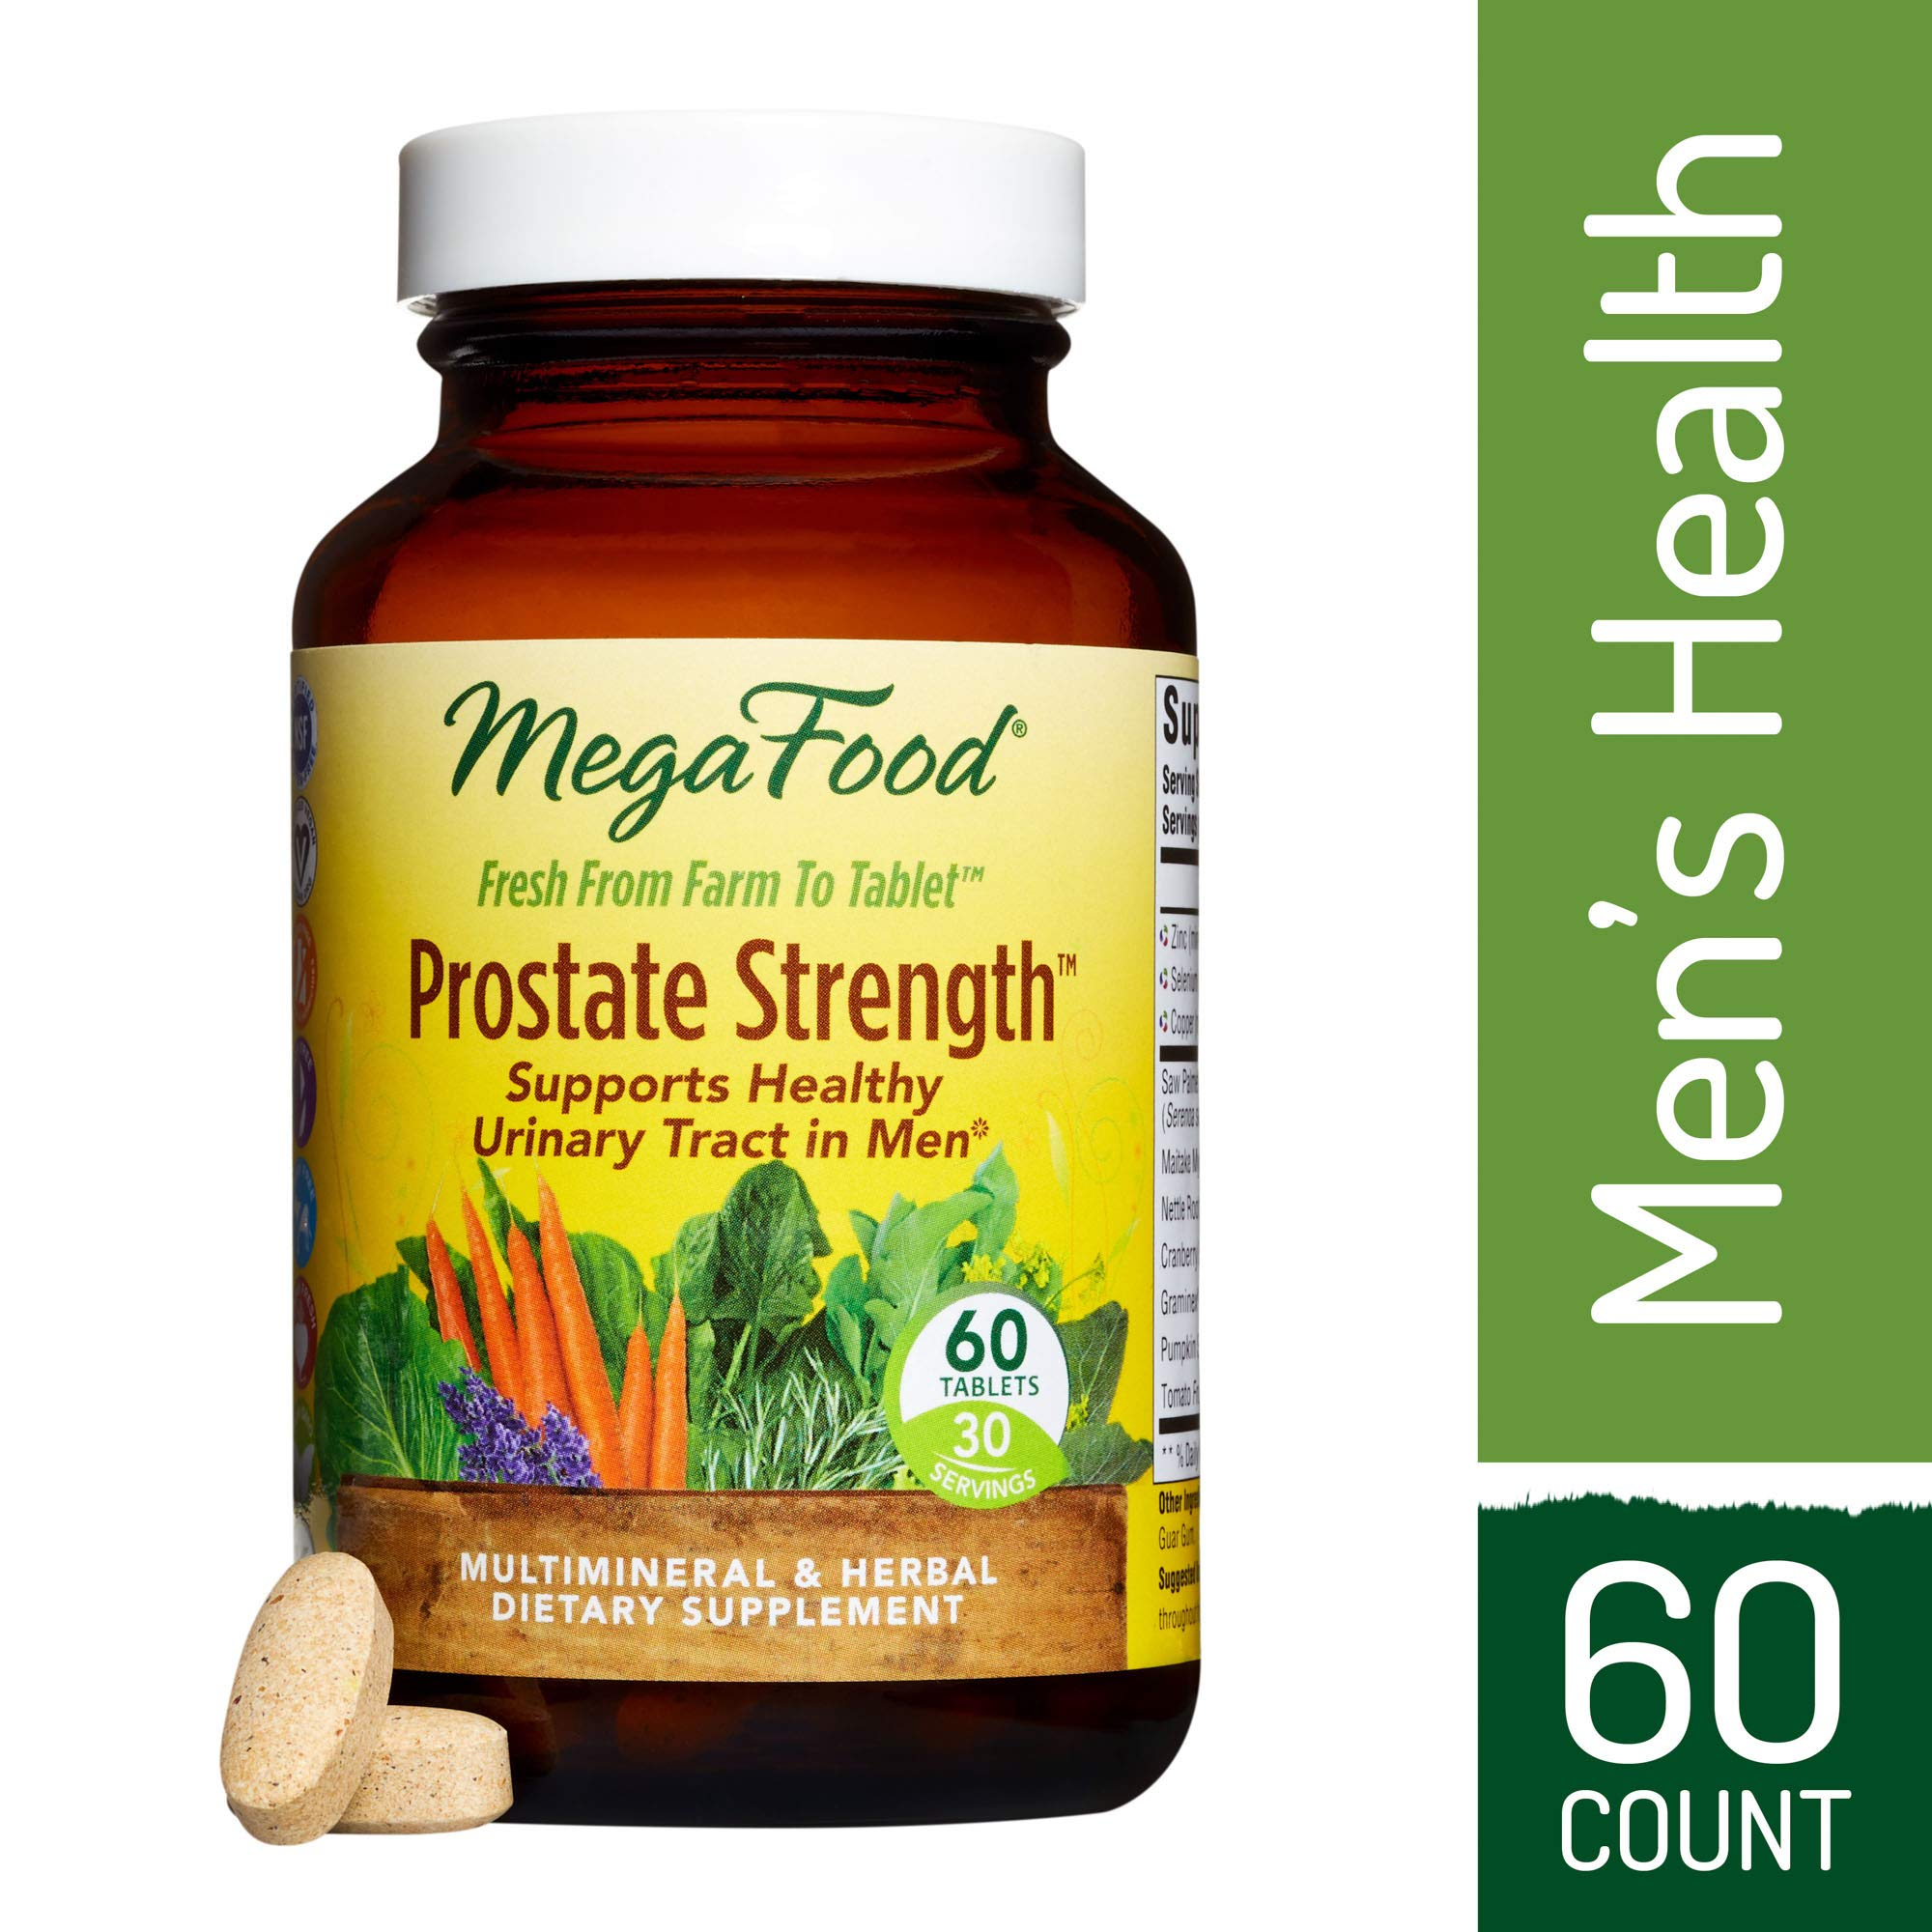 MegaFood - Prostate Strength, Multimineral and Herbal Support for Prostate and Urinary Health with Saw Palmetto, Pumpkin Seed Extract, and Zinc, Vegan, Gluten-Free, Non-GMO, 60 Tablets (FFP)